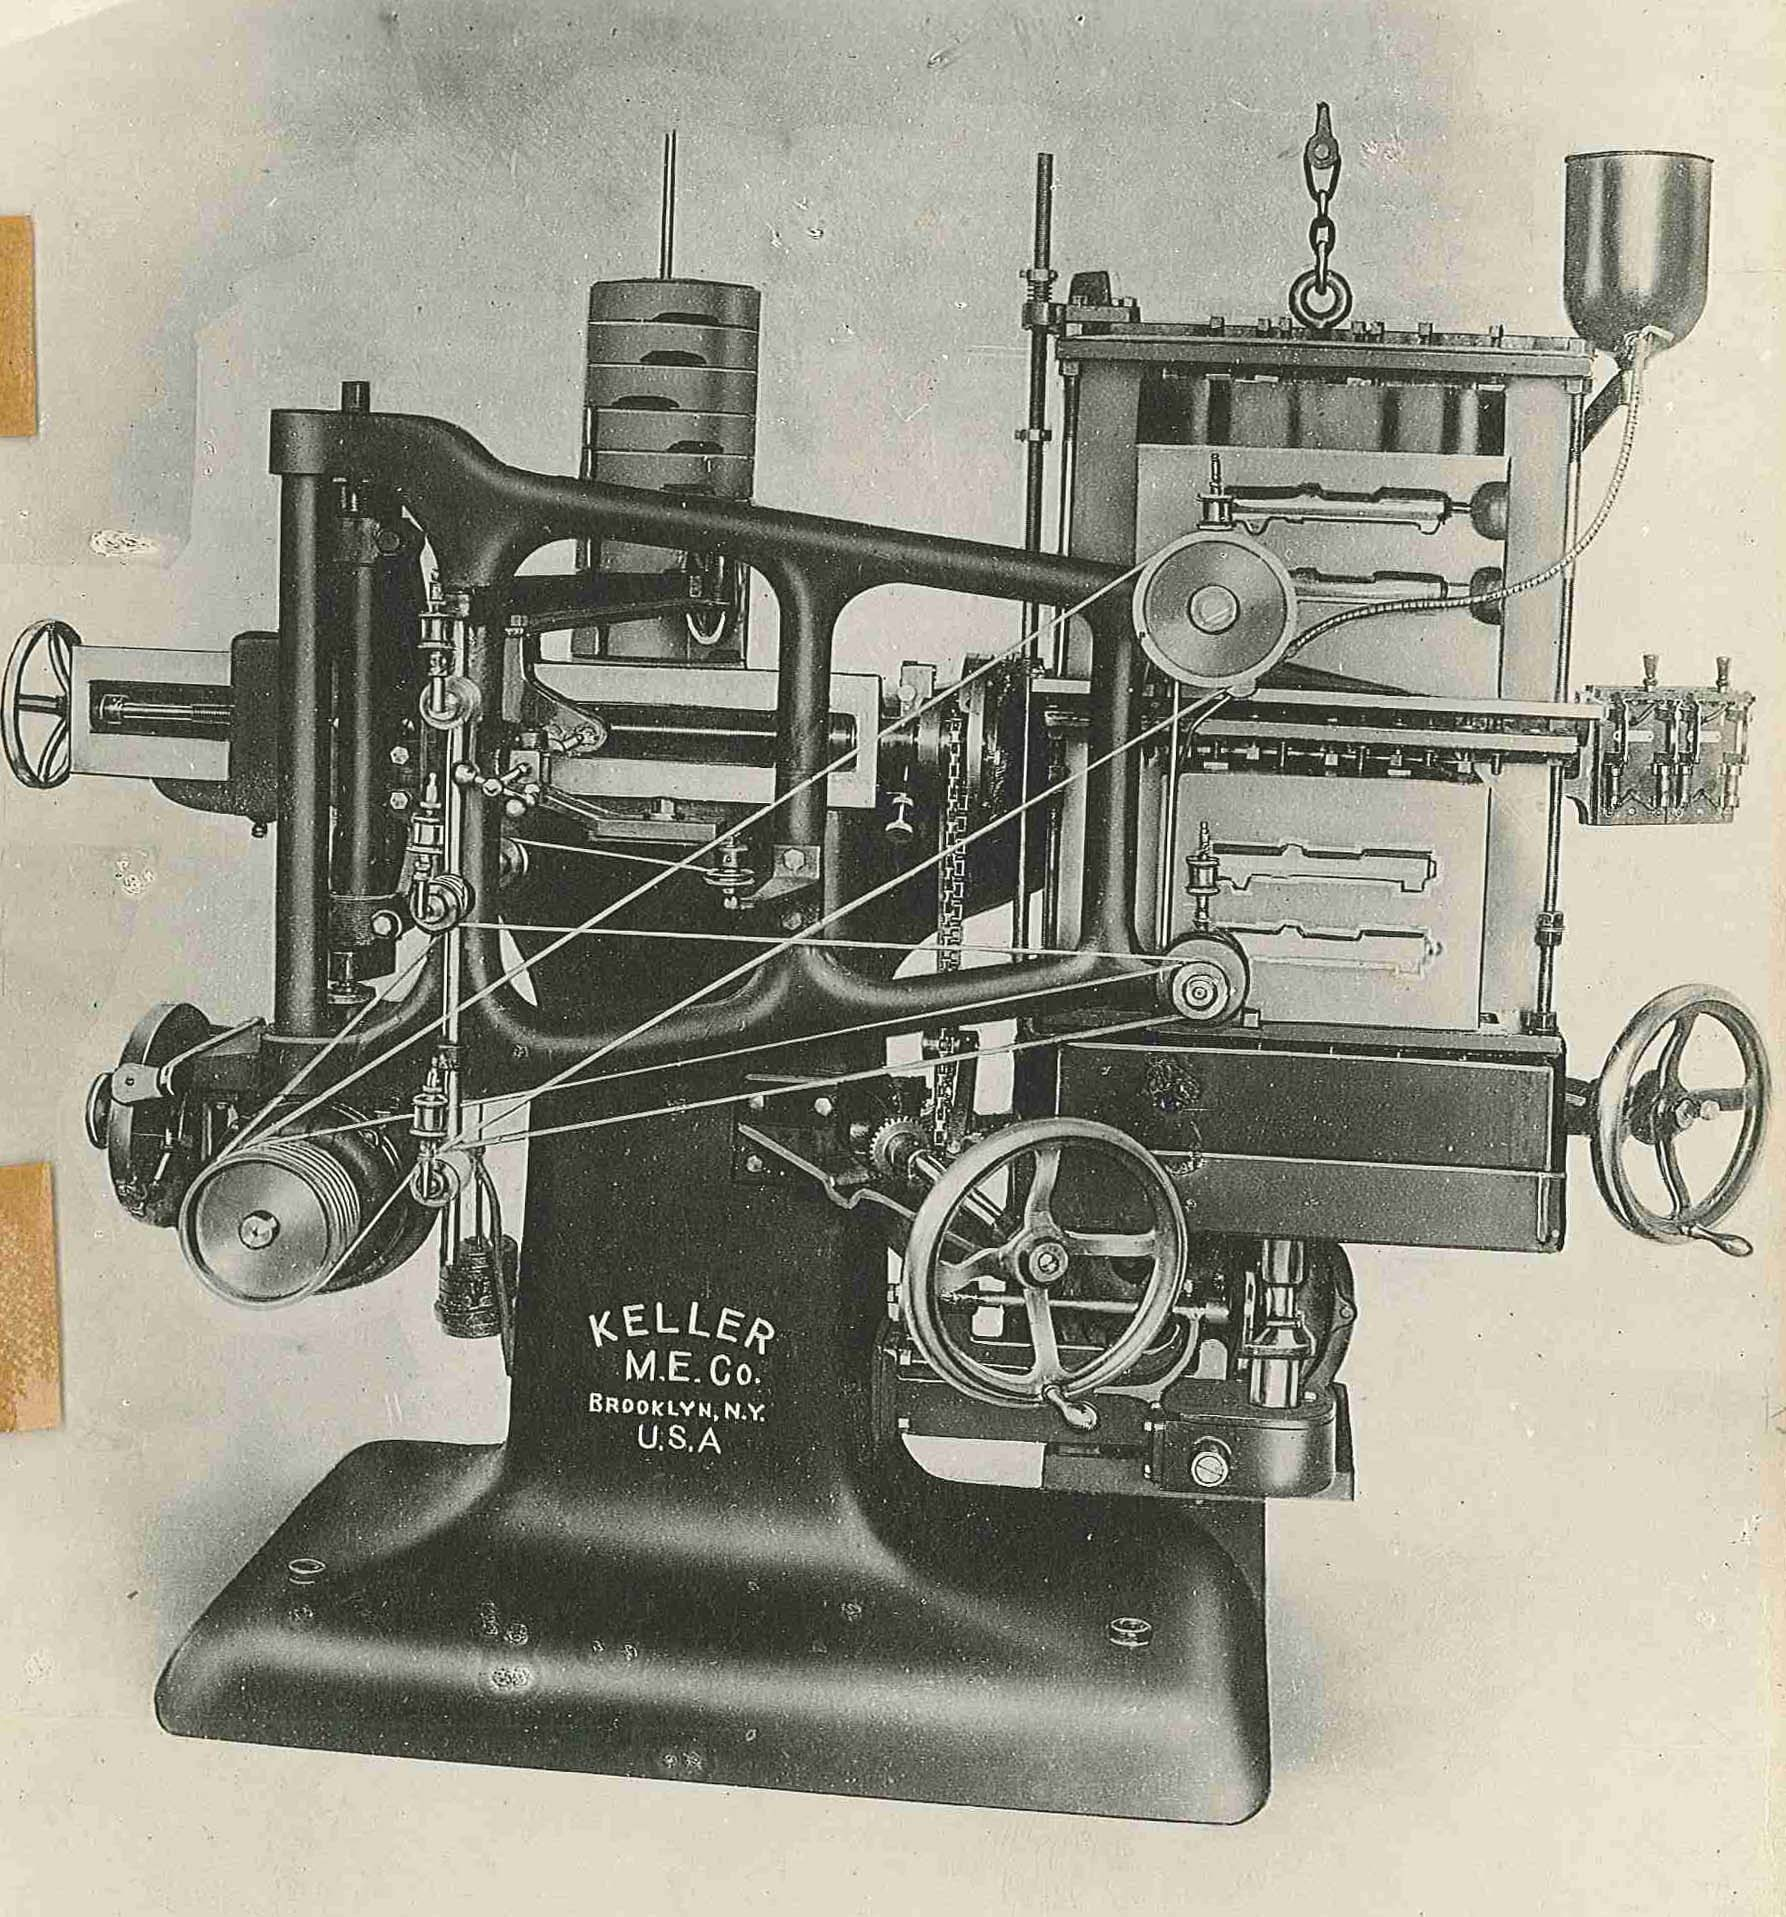 Keller machine, Keller Mechanical Engineering Corporation Collection, Poly Archives.